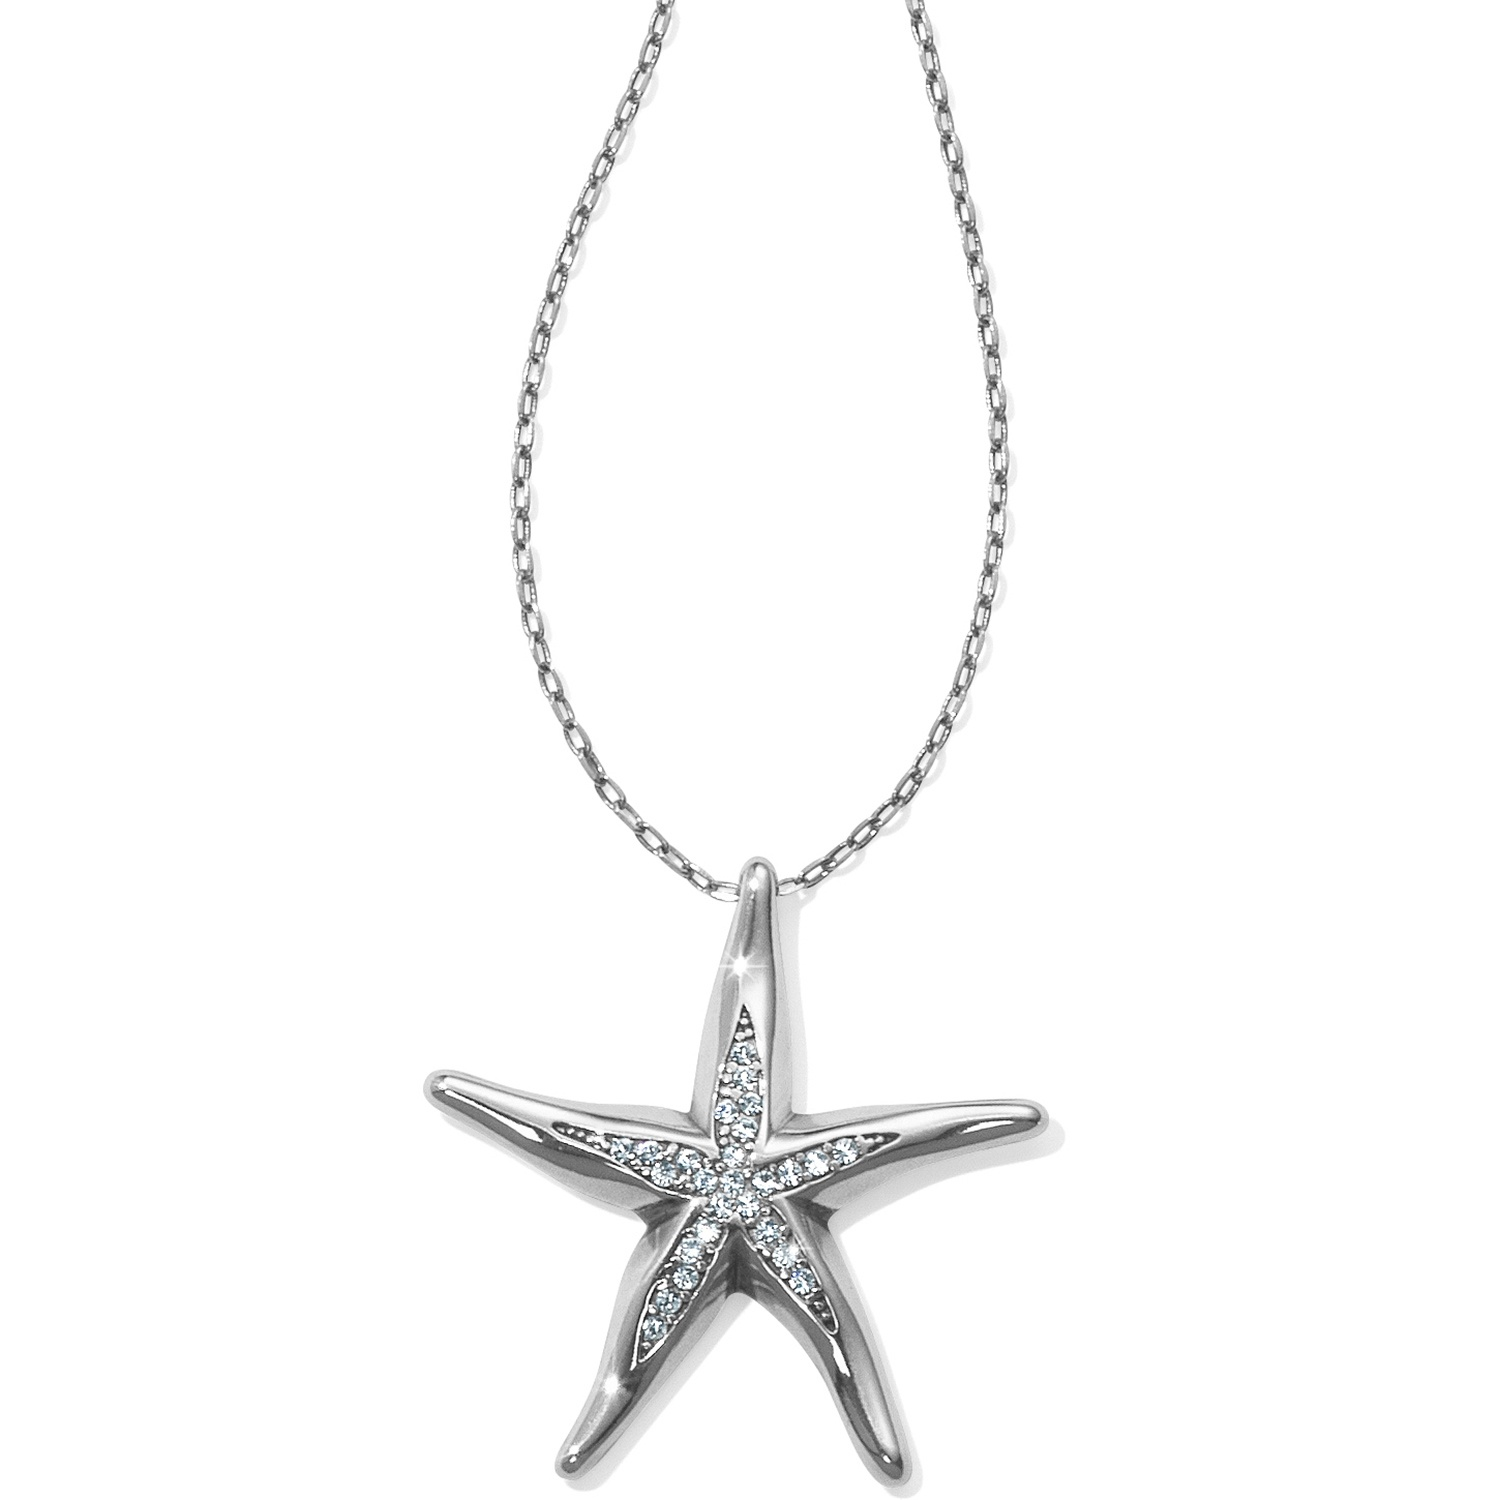 c410a17893c4f Blue Water Starfish Necklace